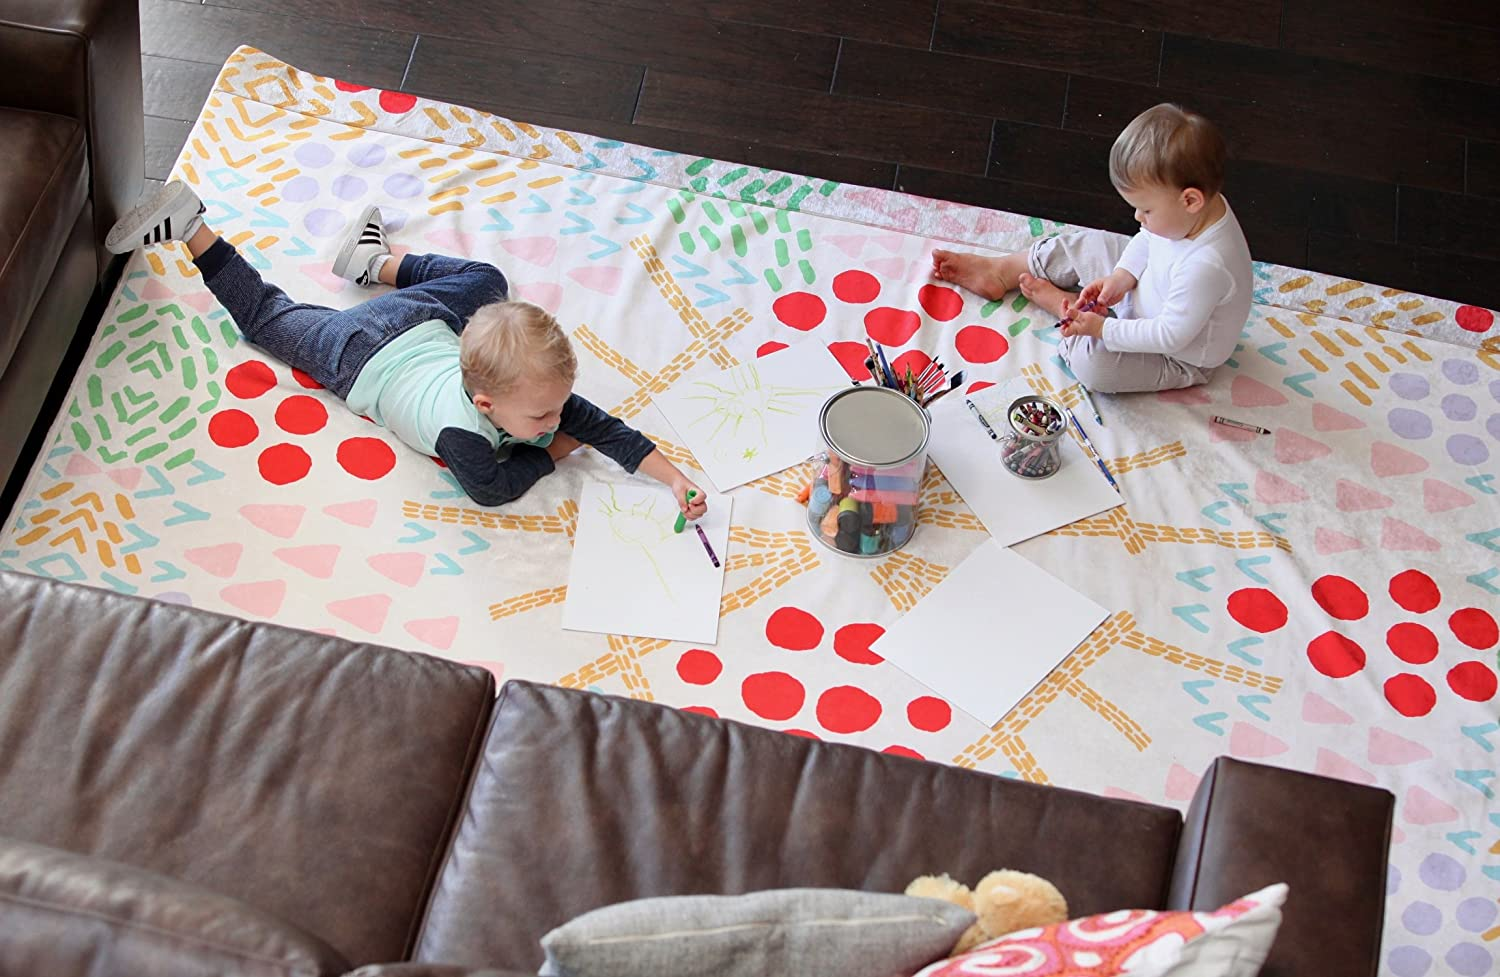 Tinseltot Plush Velvety 'Arts & Crafts' Machine Washable, Non-Toxic Playmat and Protective Rug Slipcover, 4' x 6'